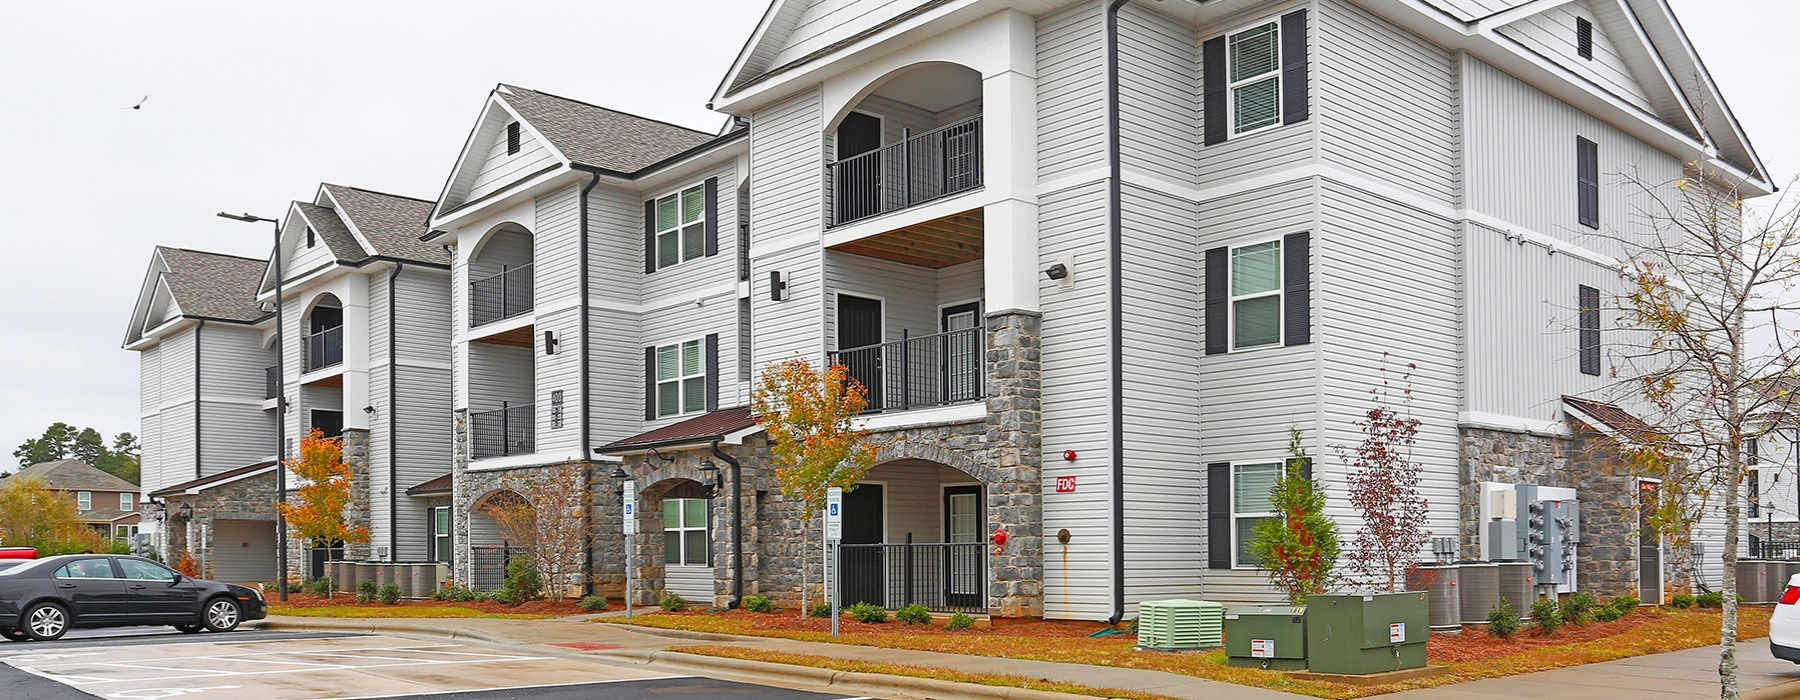 Laurel View Apartments in Concord, NC Exterior Building View